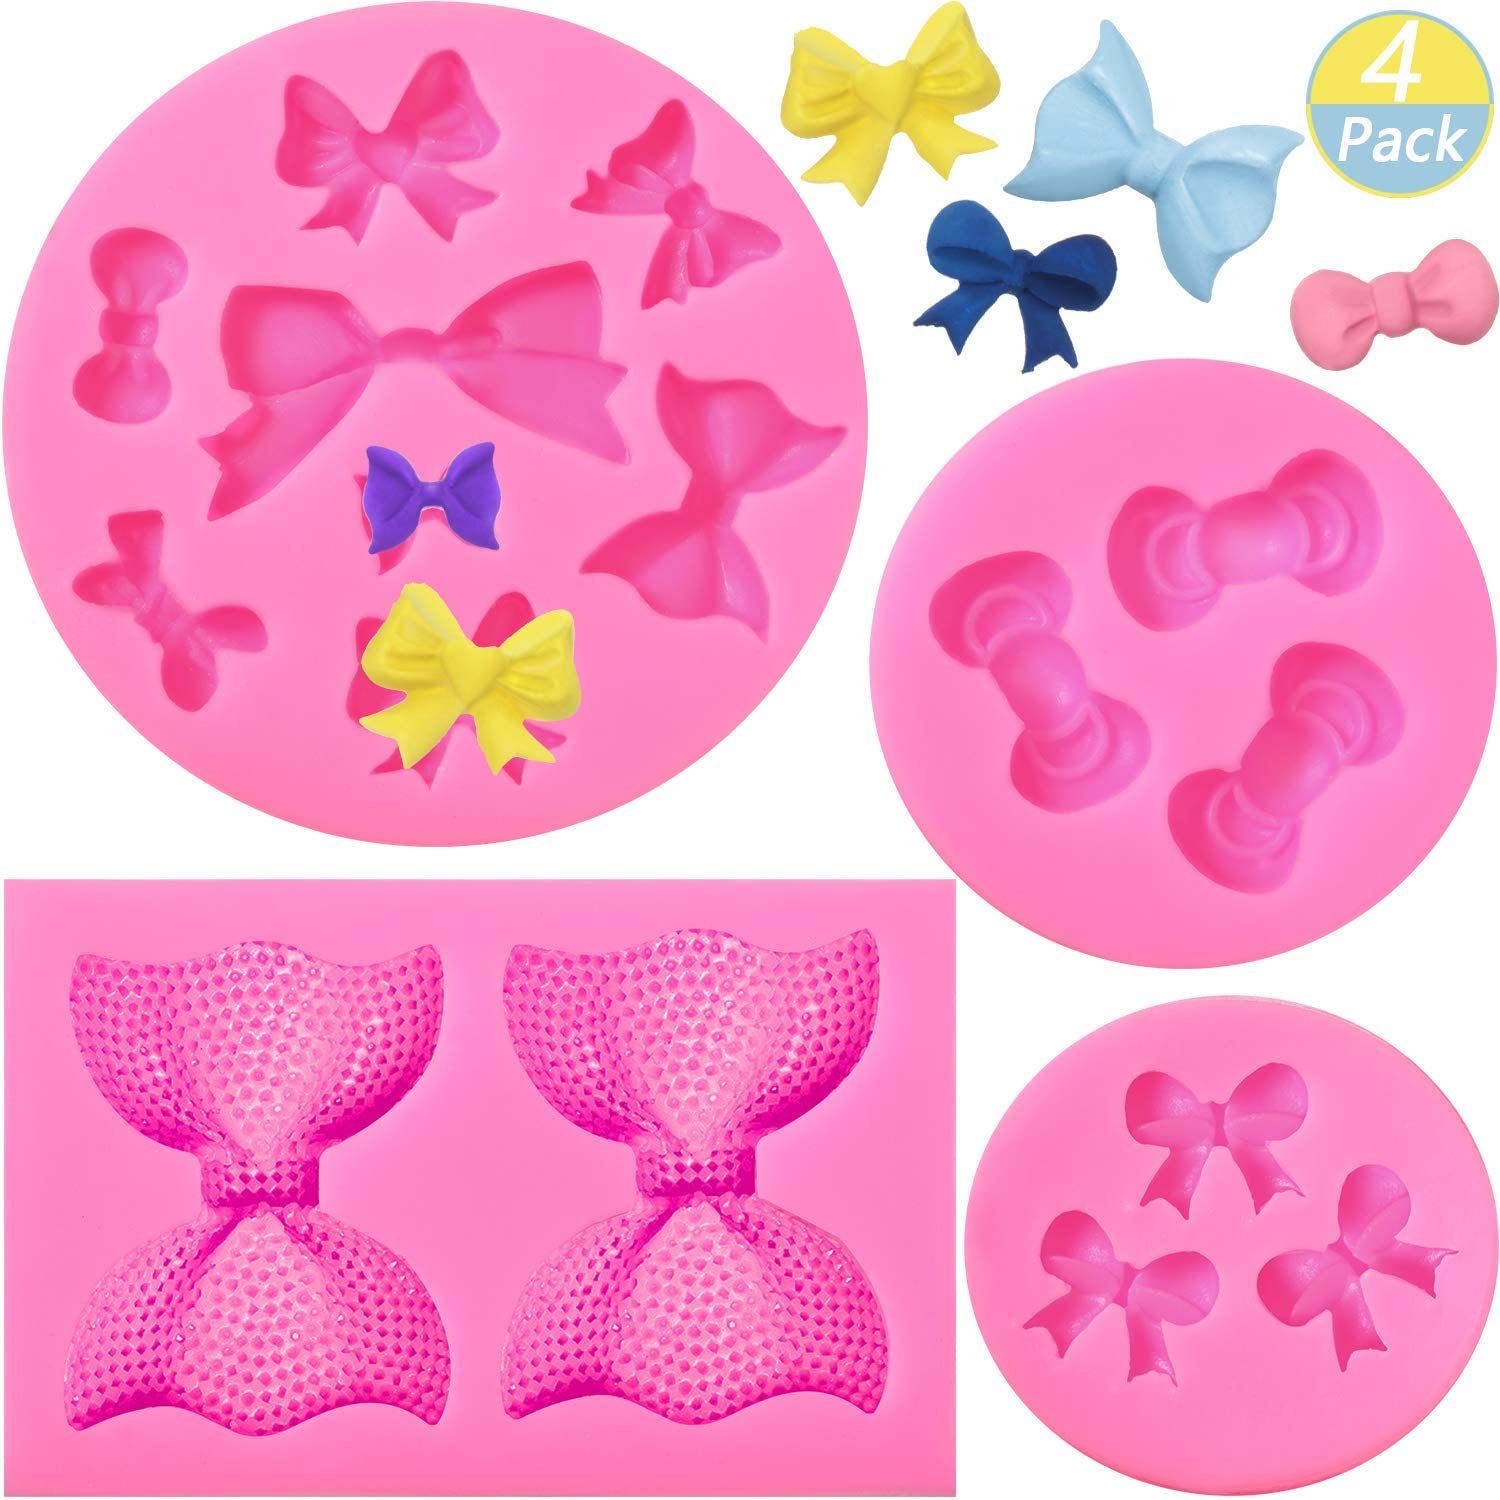 4 Pieces Bow Silicone Fondant Molds Bowknot Fondant Chocolate Candy Molds Bow Silicone Mold DIY Cake Molds for Birthday Party Cake Cupcake Supplies, 4 Styles